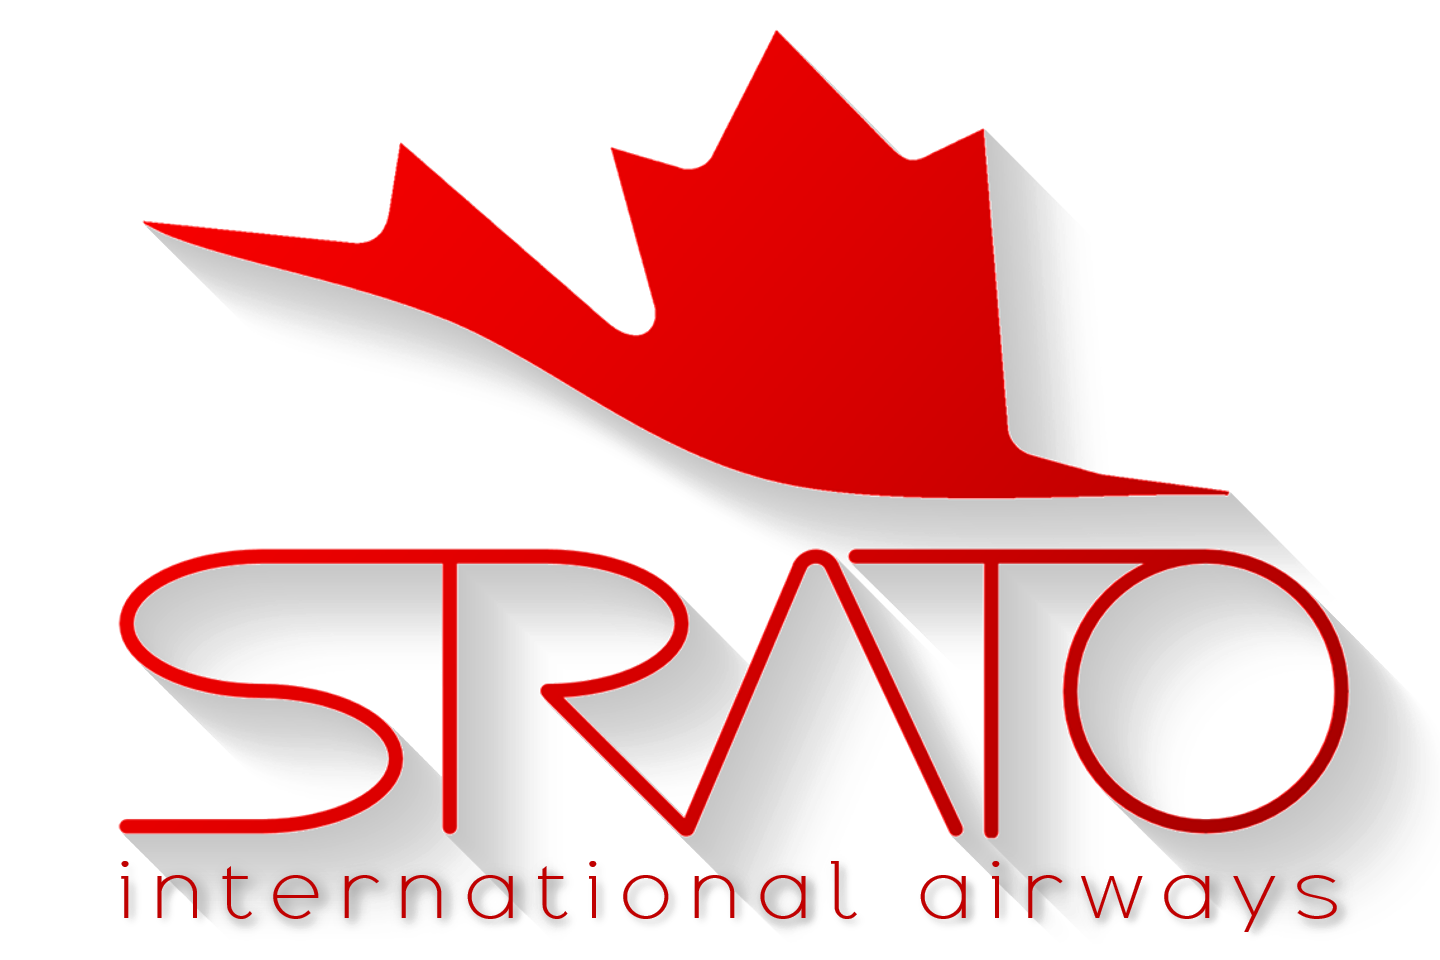 Strato International Airways Official Logo